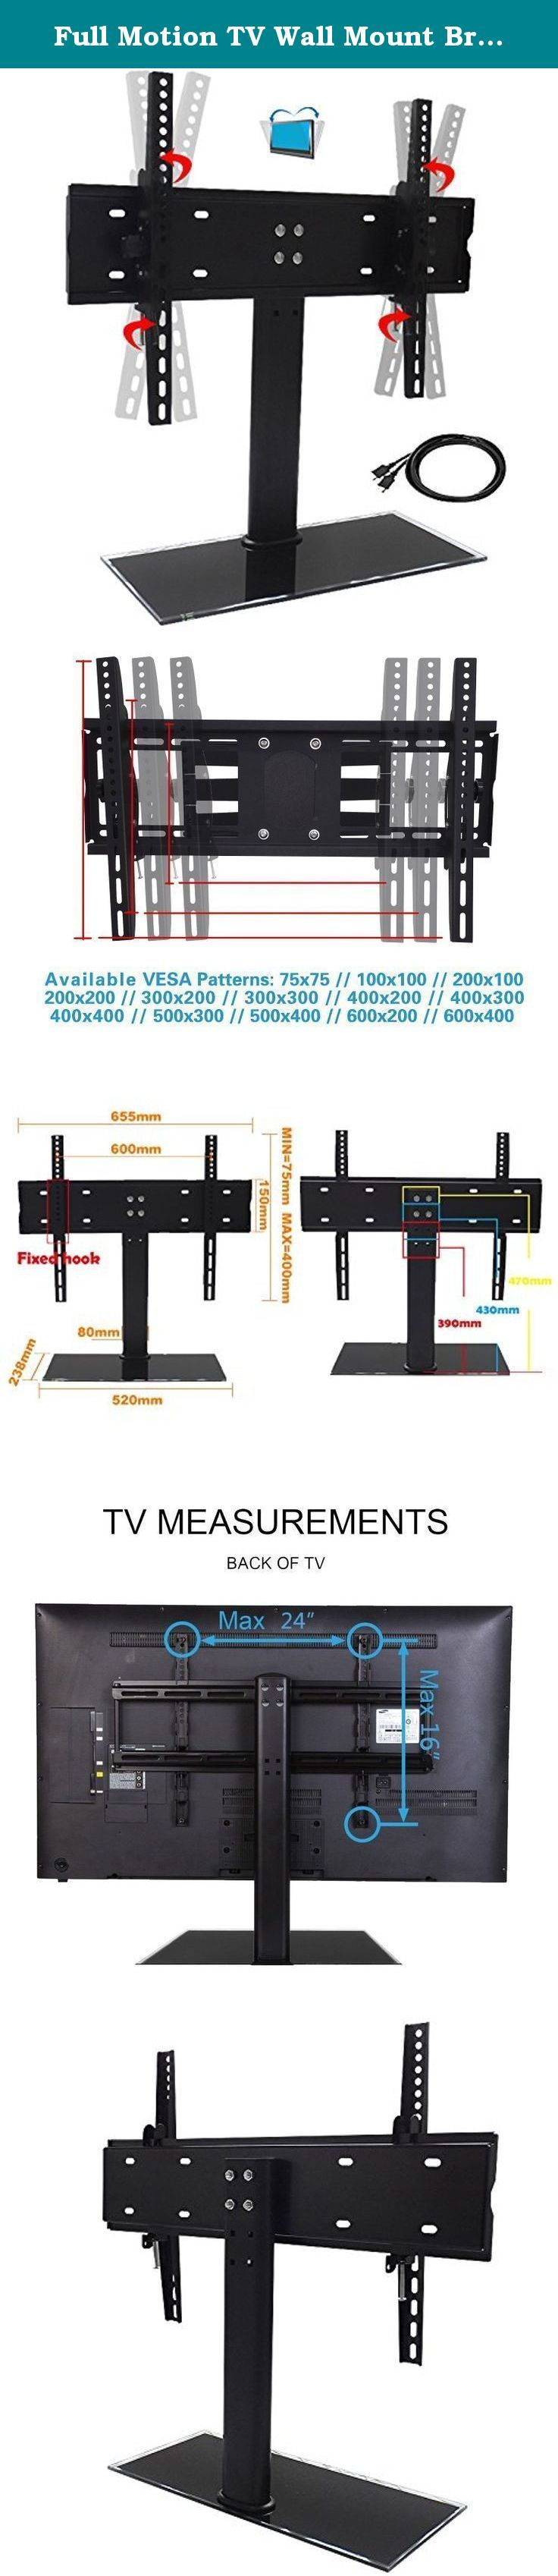 "Full Motion TV Wall Mount Bracket for 17"" - 75"" Plasma, LCD and LED Flat Screen Televisions (TV Stand with Shelf, 17"" - 55""). Before bidding the item, please check whether the TV Stand is suitable for your TV. ★★★ Please check the weight of your TV; it should be less than 78 lbs/35kg. ★★★ Look at the back of your TV, find the mounting hole and measure horizontal and vertical distance, if the horizontal distance(width) within 24""(600mm), vertical distance(height) is within 16""(400mm), then…"